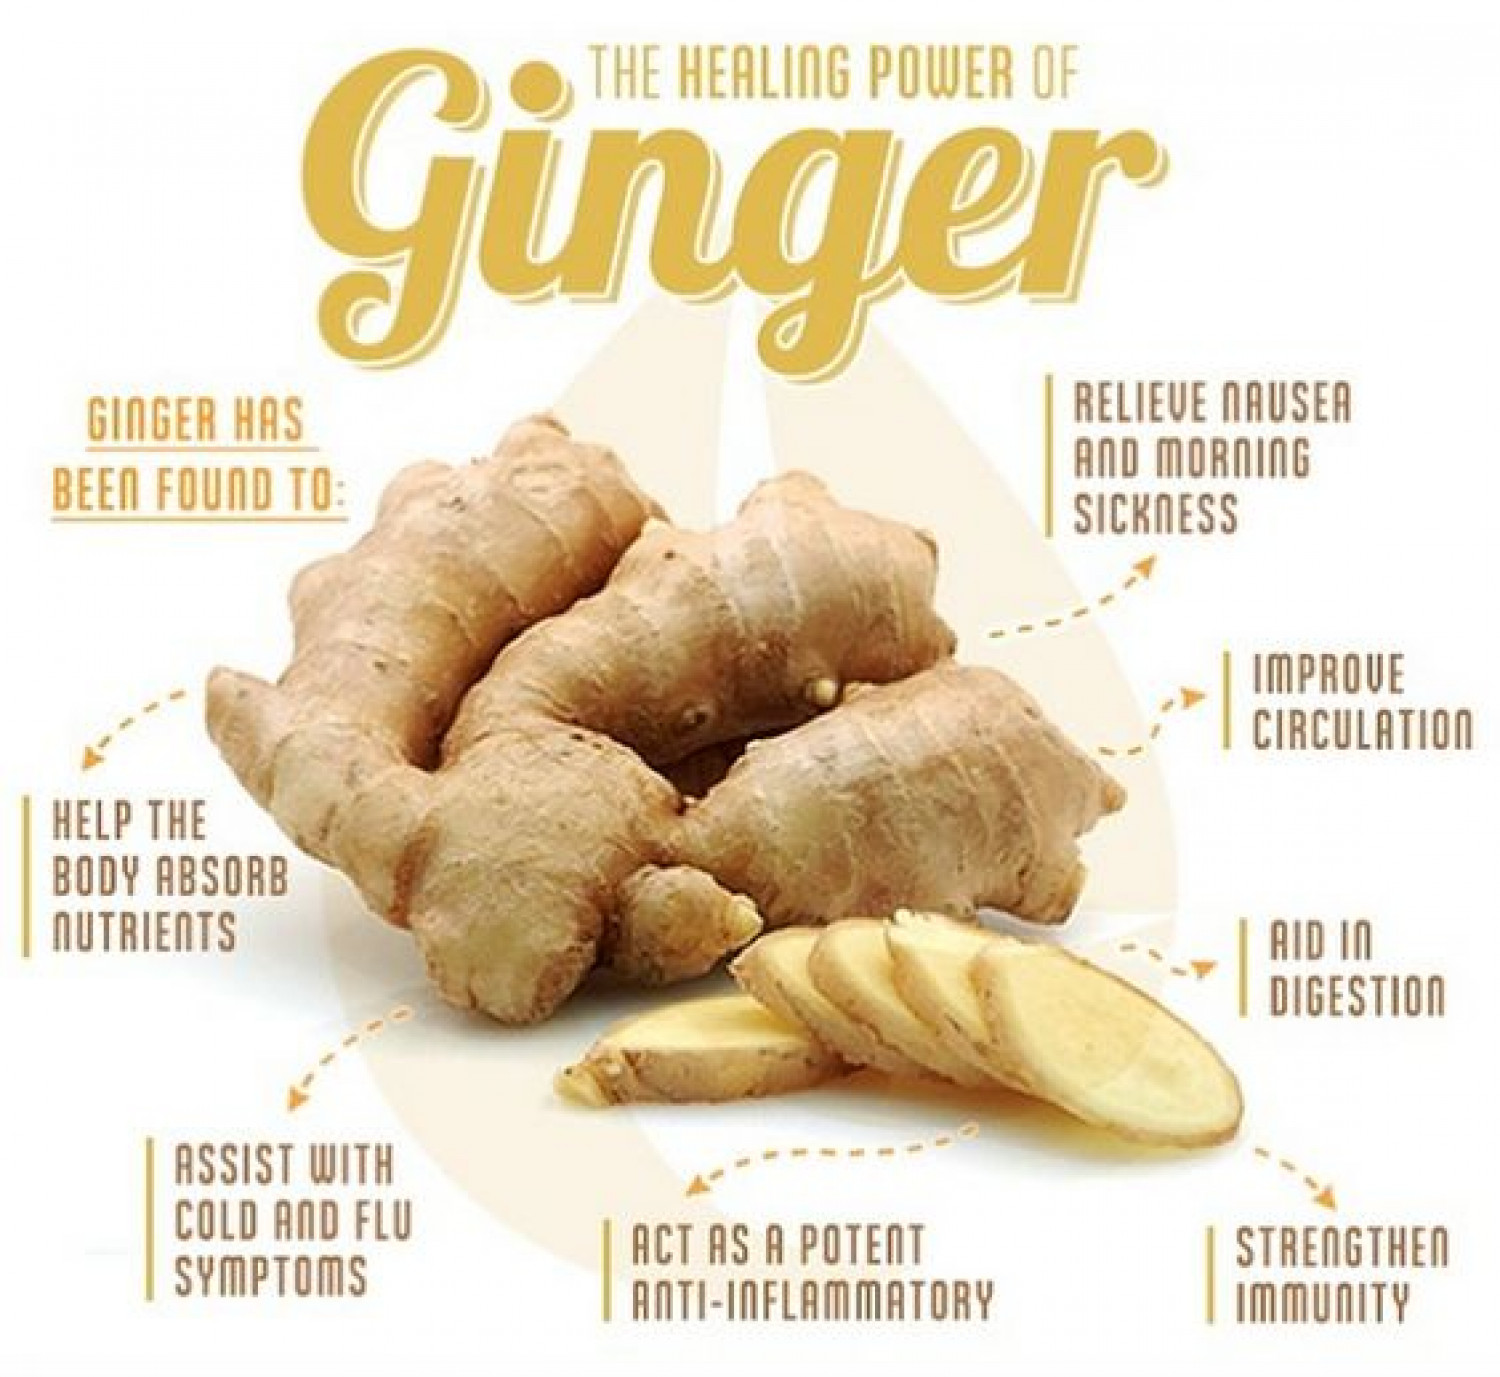 the healing power of ginger; vegan, whole foods, plant-based diet.  Infographic